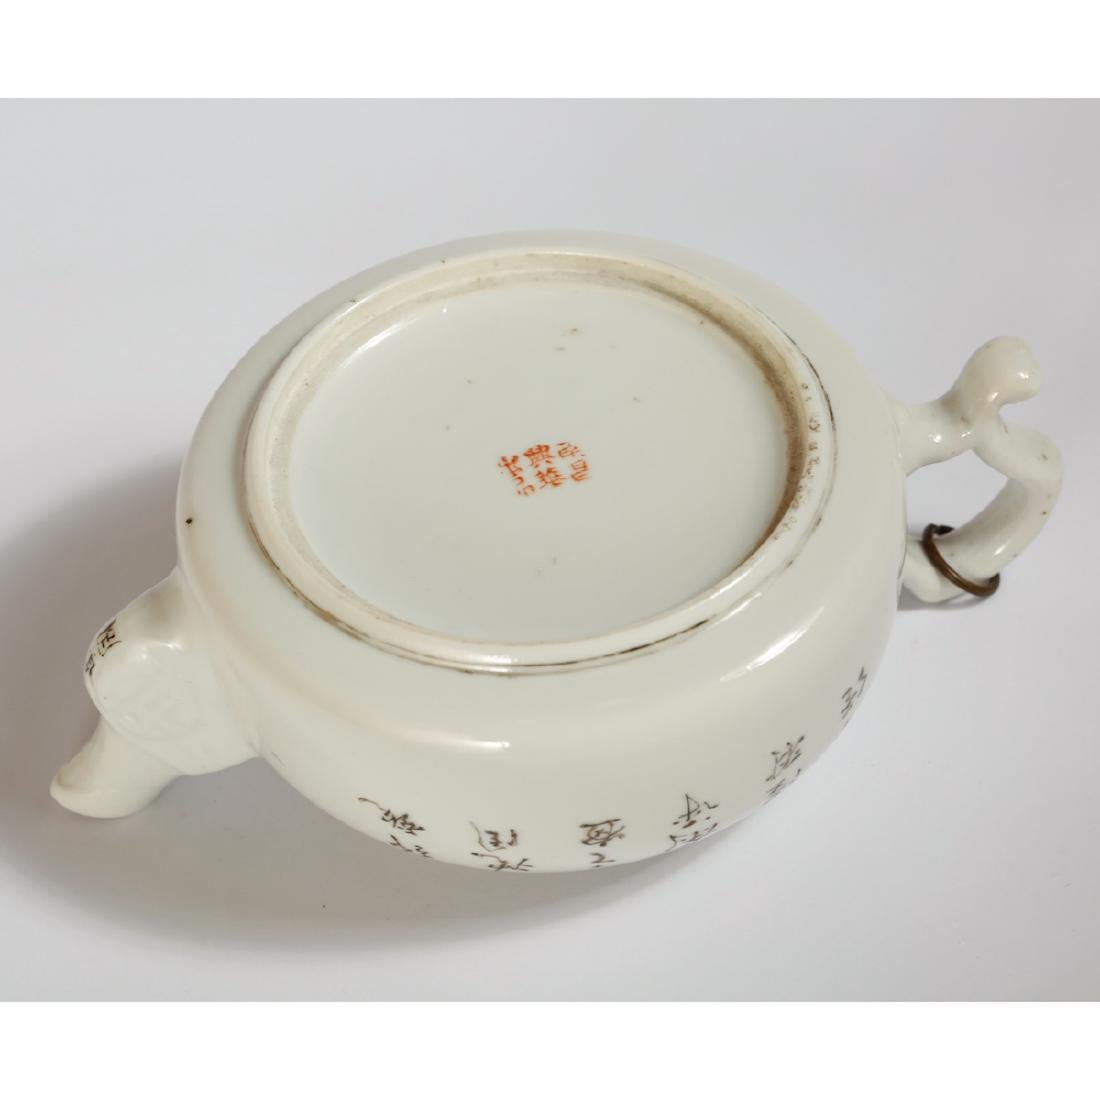 CHINESE FAMILLE ROSE PORCELAIN TEAPOT - 8